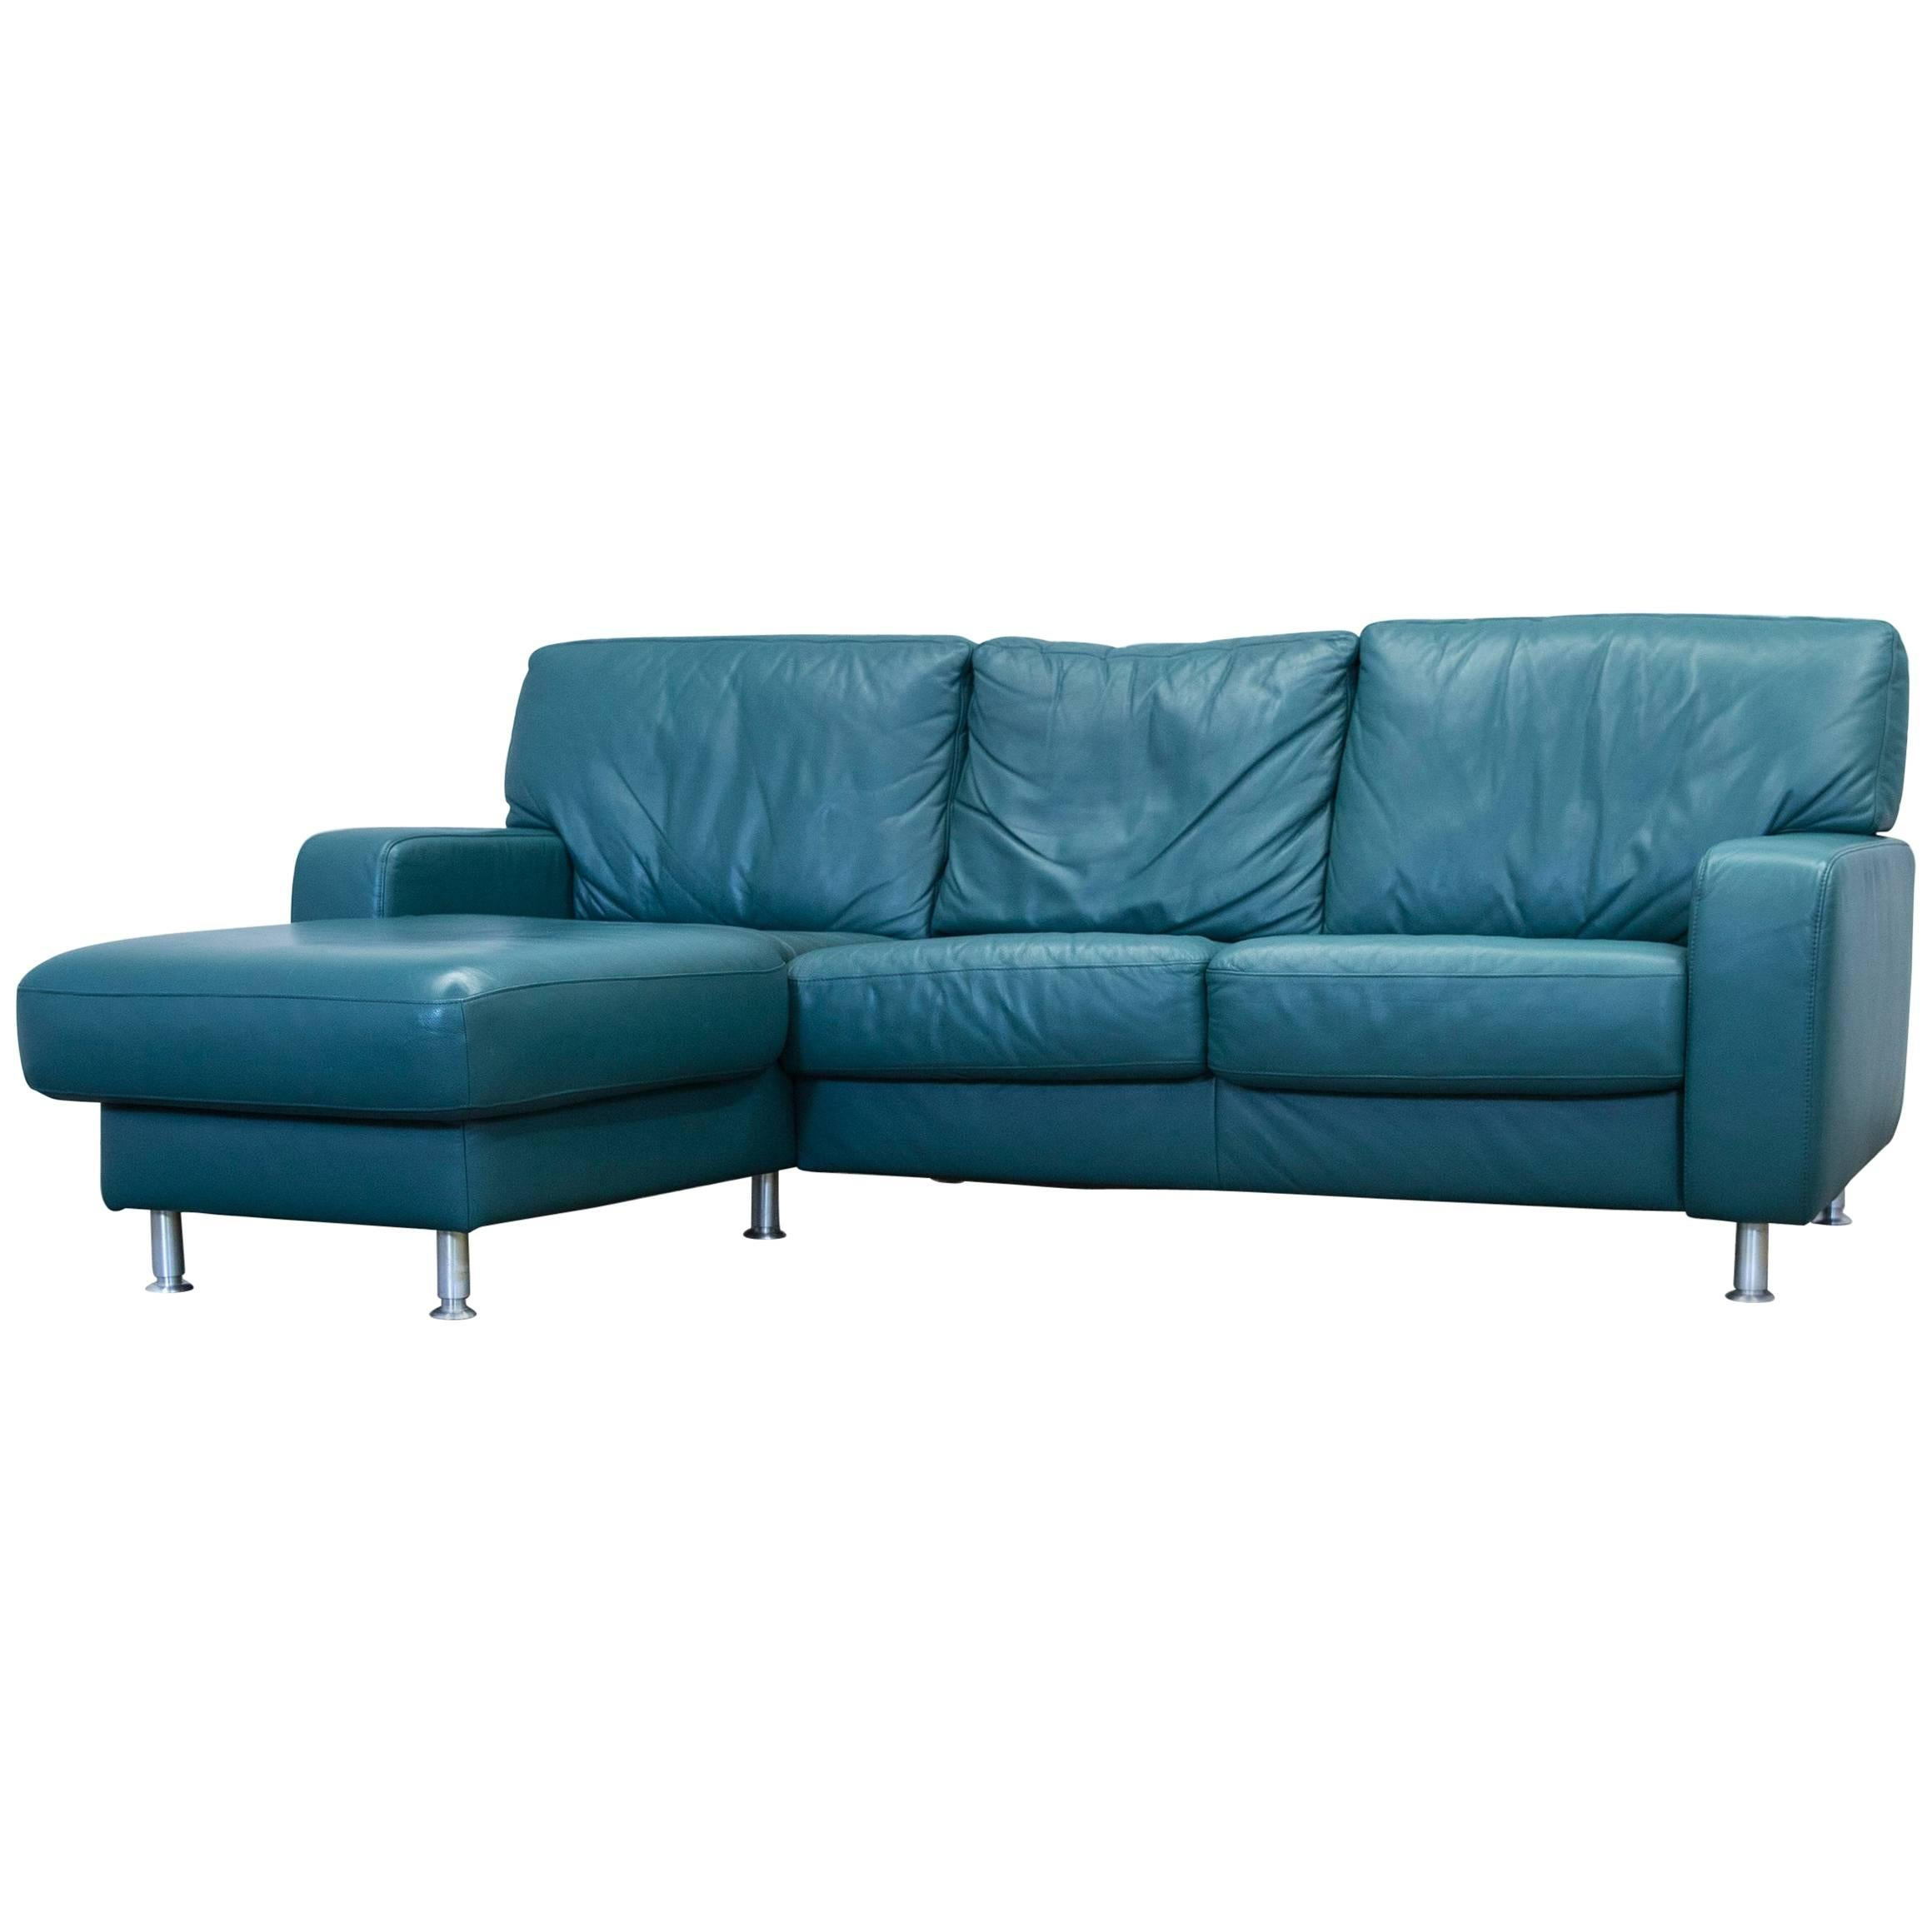 Koinor Designer Corner Sofa Leather Green Couch Modern For Sale